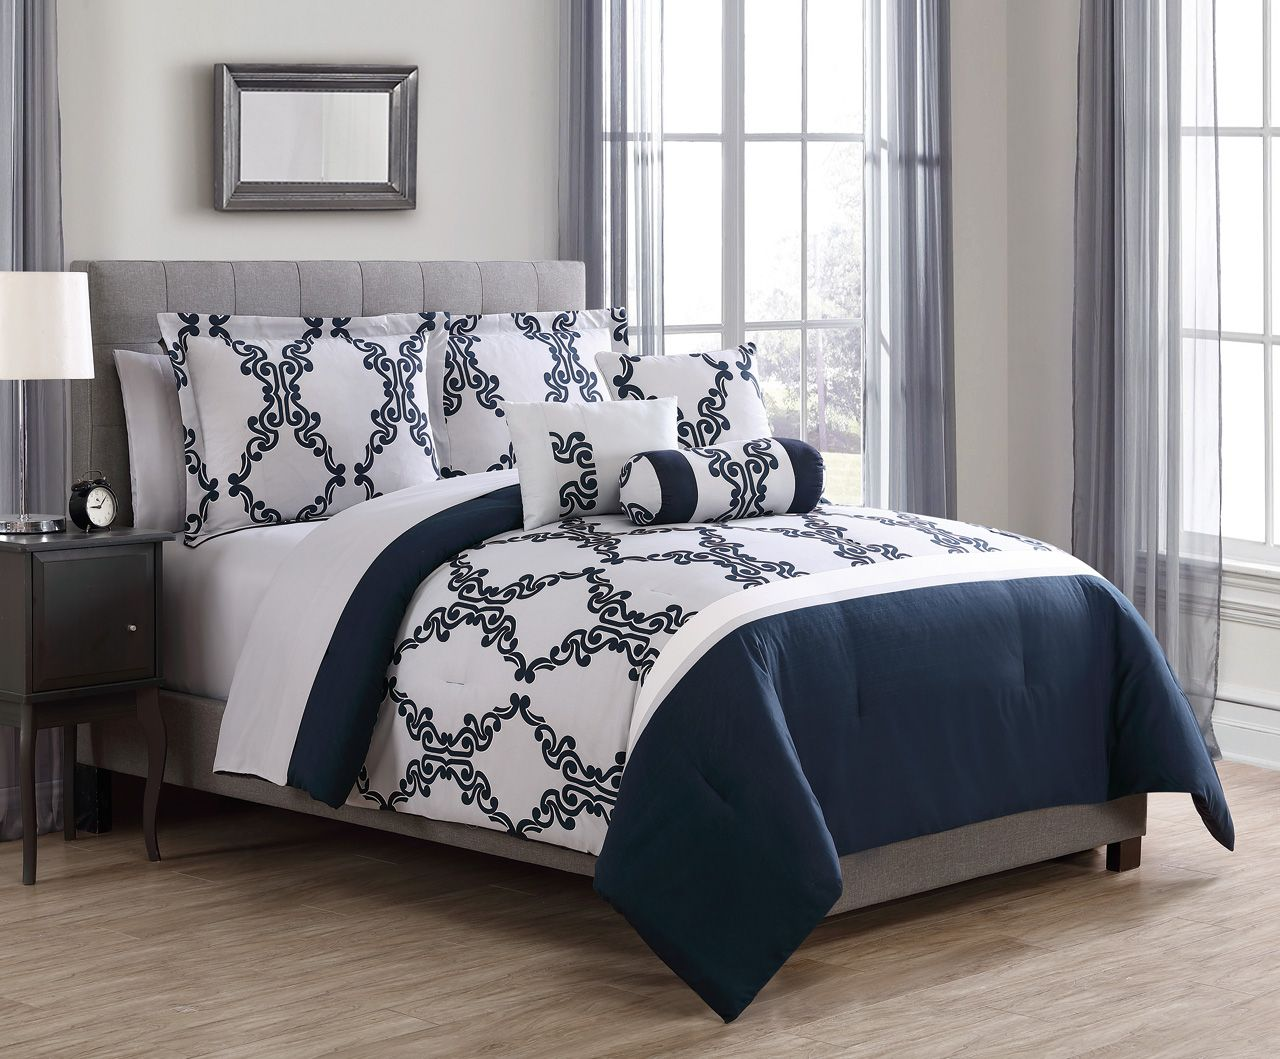 10 Piece Kayla Navy Gray With Sheets Comforter Set Bedroom Comforter Sets Comforter Sets Comfortable Bedroom Queen comforter sets with sheets